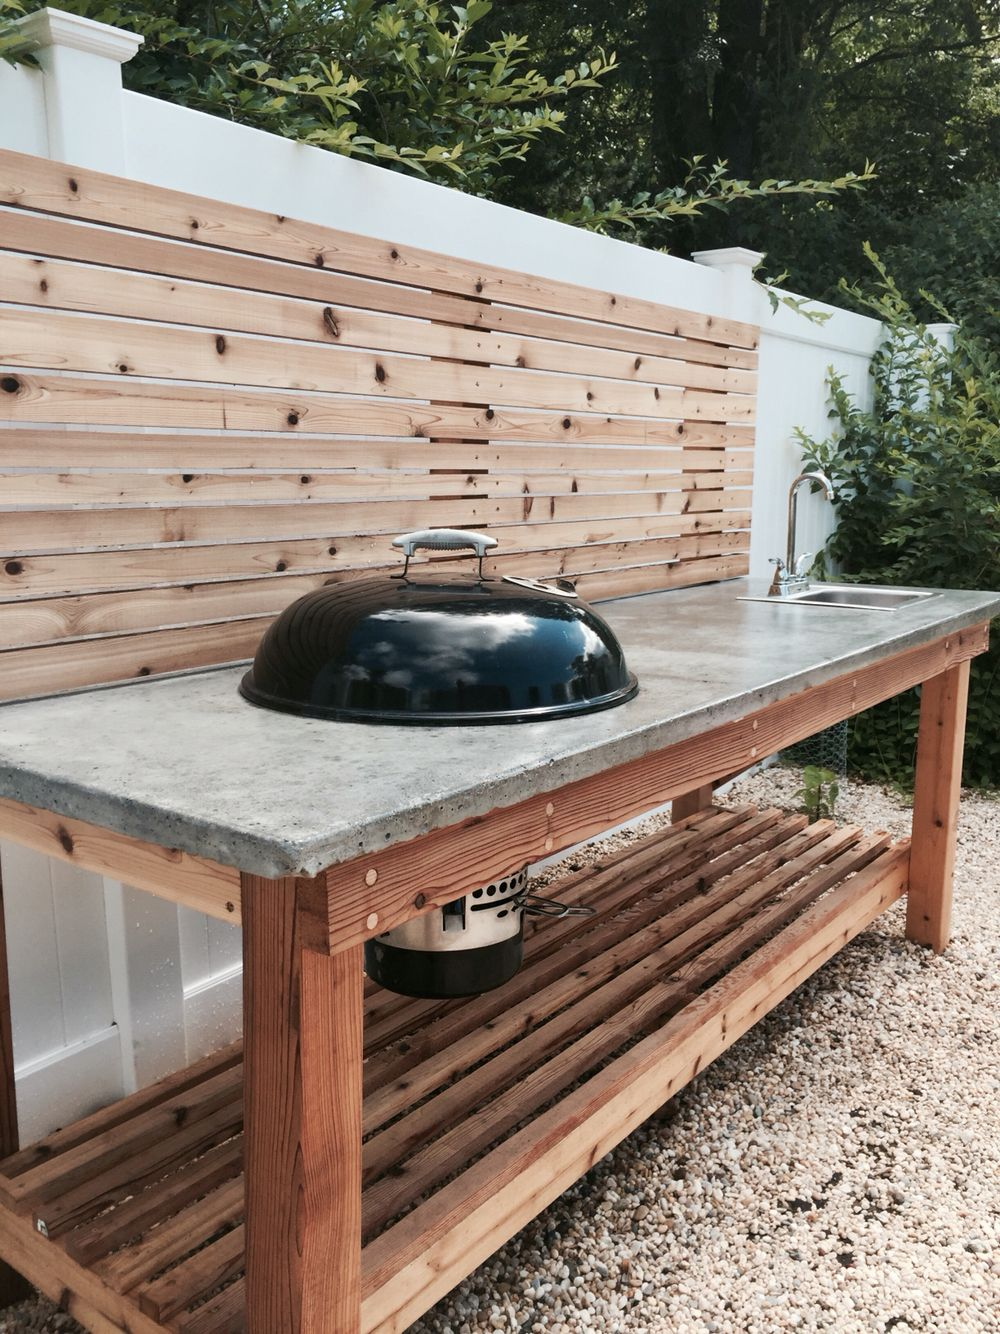 cedar wood outdoor kitchen with a concrete countertop and